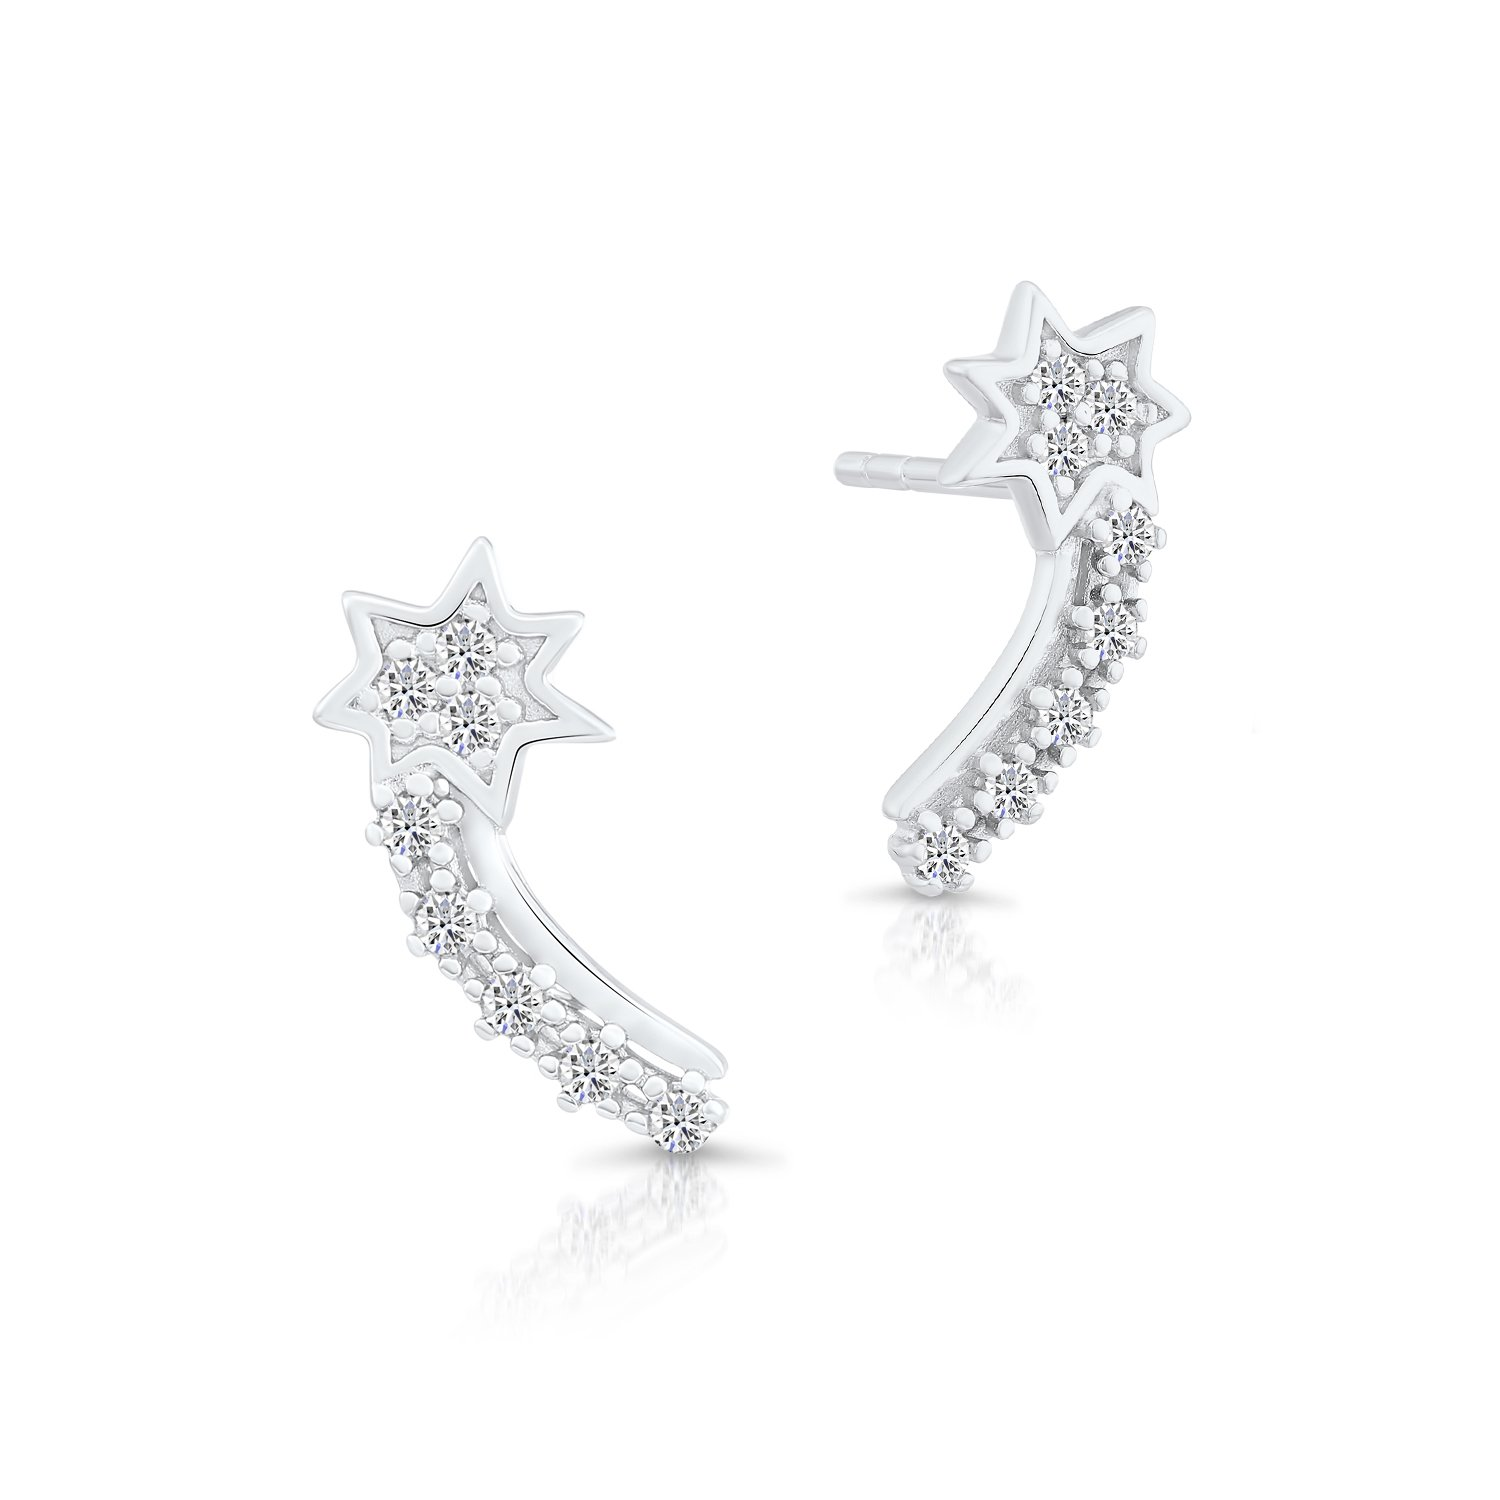 ee81bb318e3fa Amazon.com: Sterling Silver Shooting Star Stud Earrings with Cubic ...